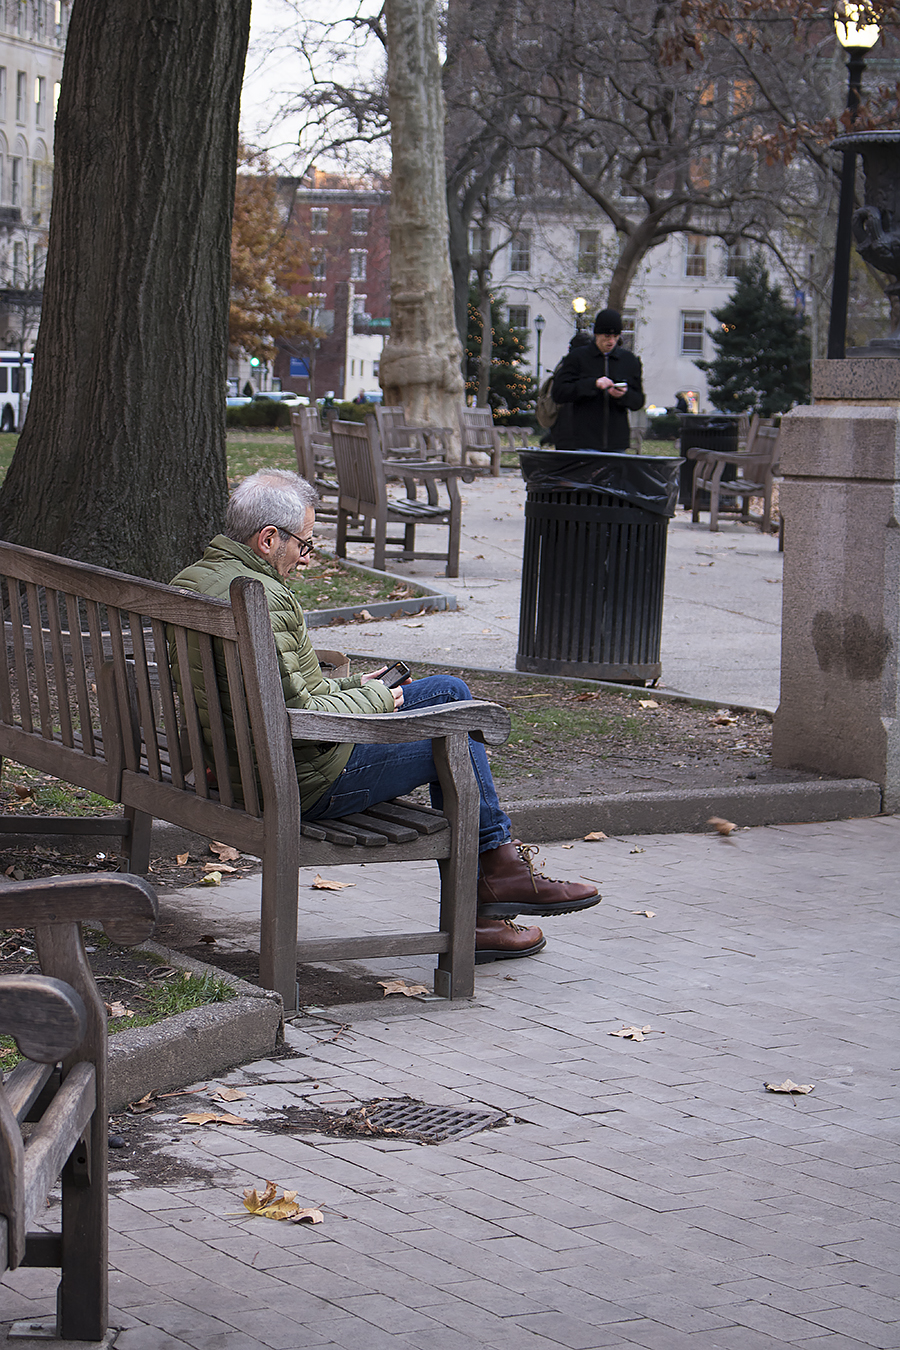 Tyler_Ling_photography_Rittenhousesquare_Philly_sitting_absorbed_cellphone_socialmedia_stanger_cold_sideshot_spying_unaware